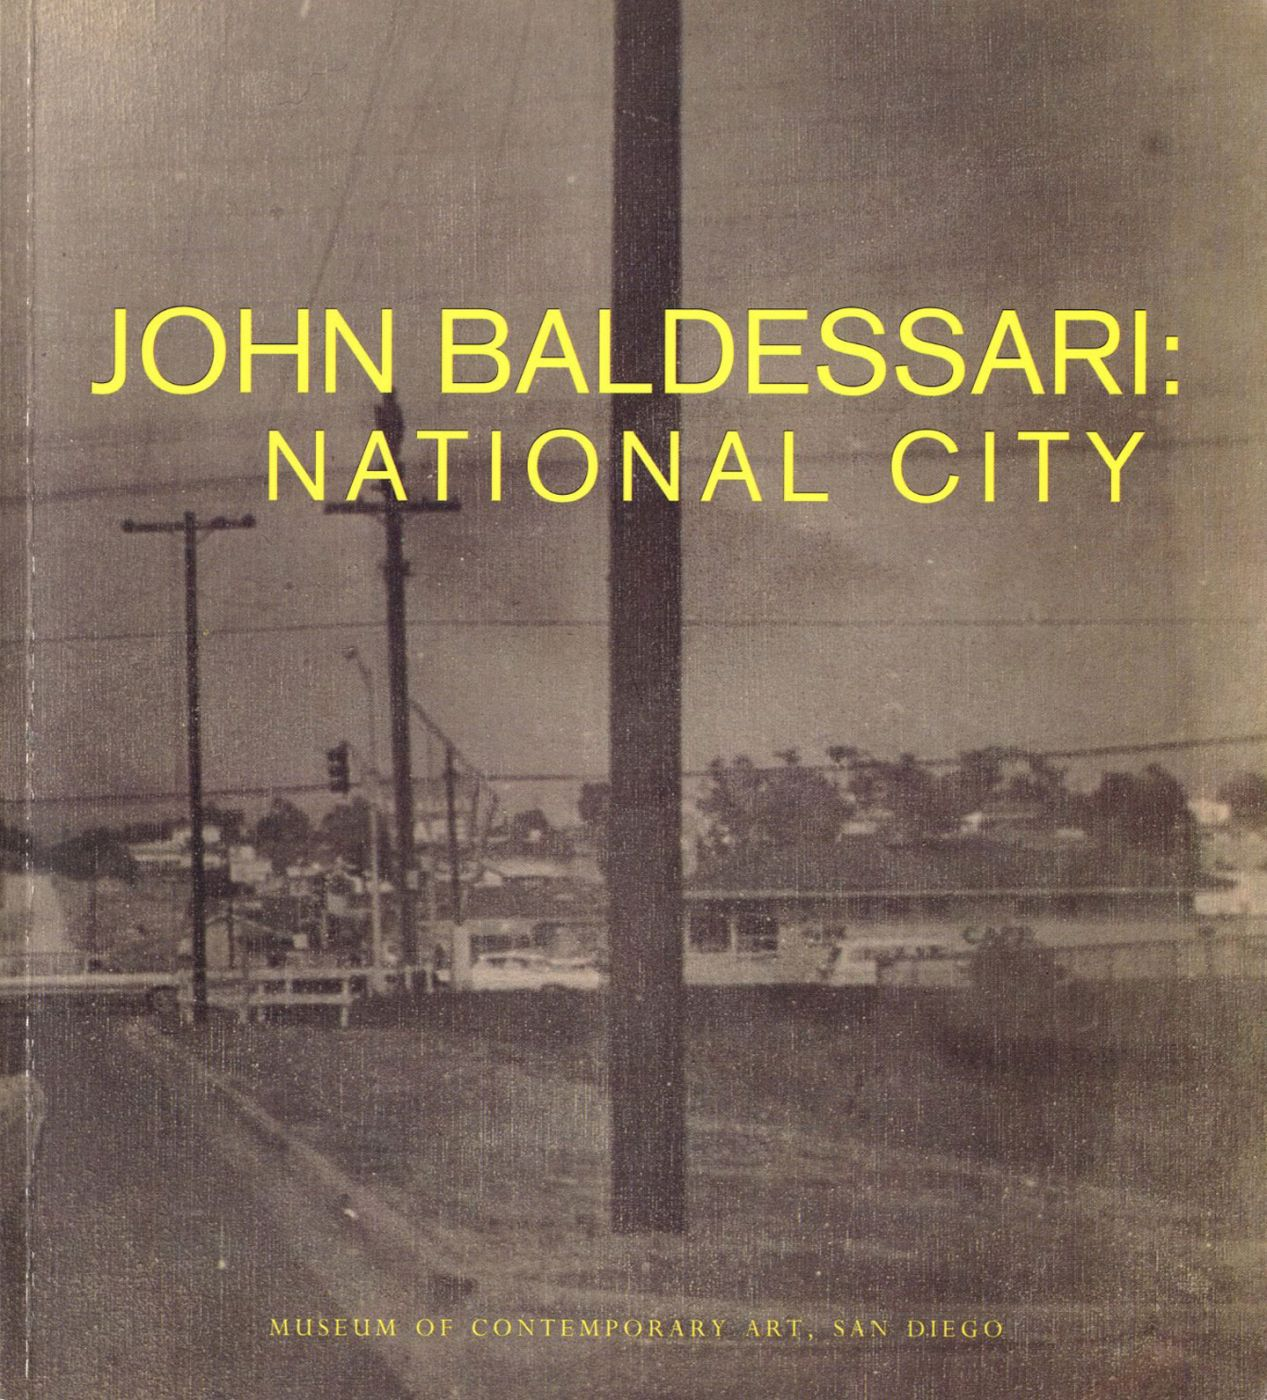 John Baldessari: National City